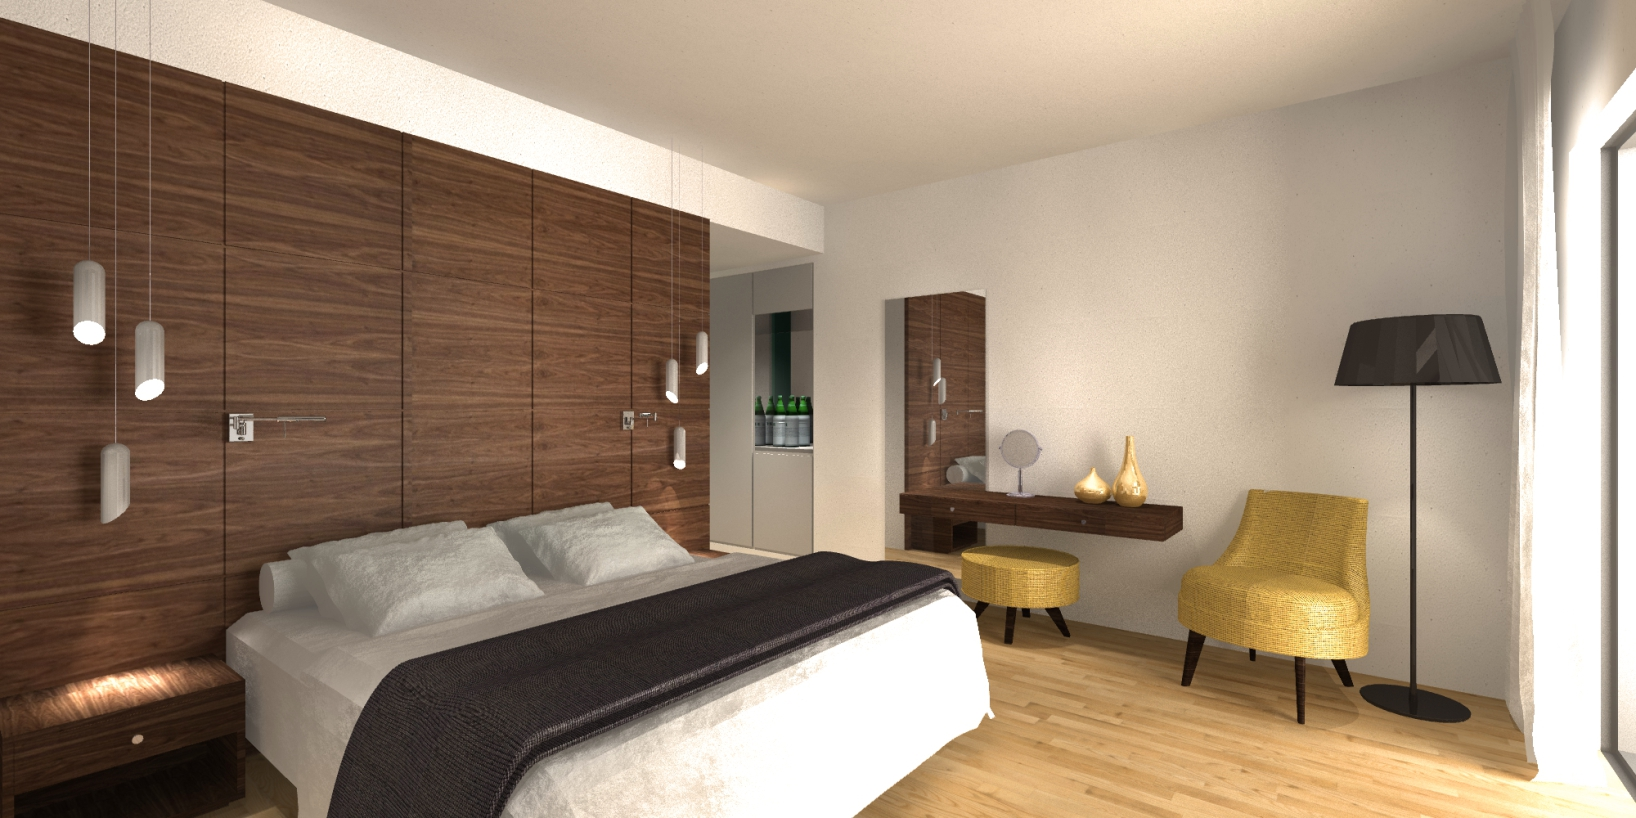 An island hotel room interior for Hotel room interior design